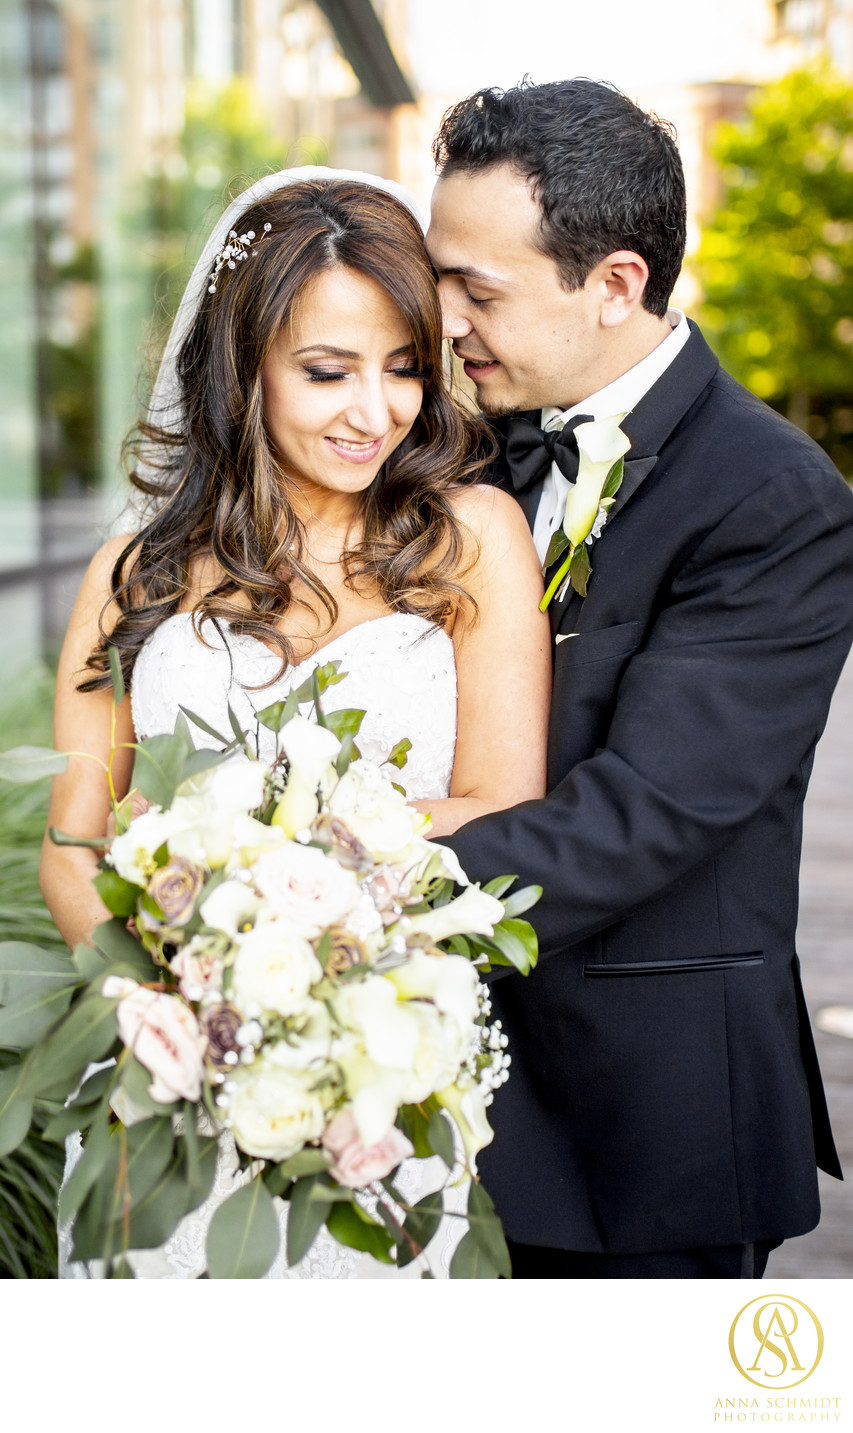 Four Seasons Baltimore Bride Groom